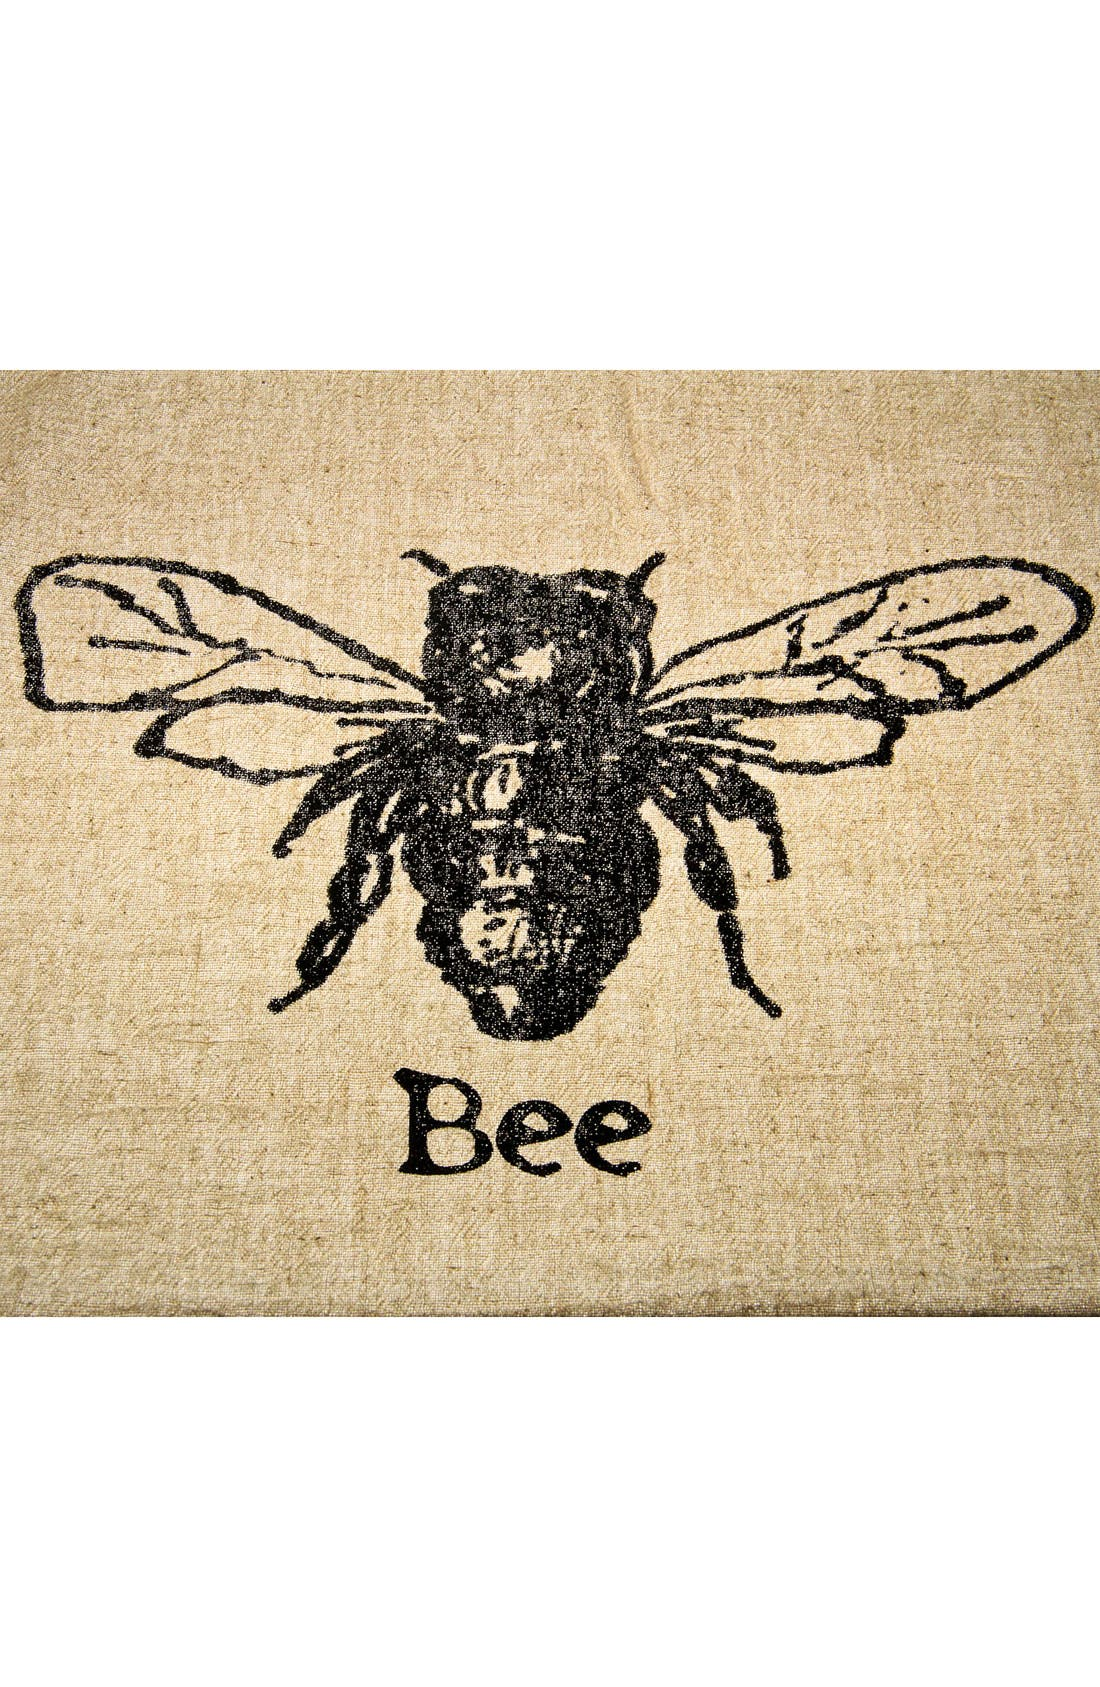 Main Image - Blithe and Bonny 'Bee' Dish Towels